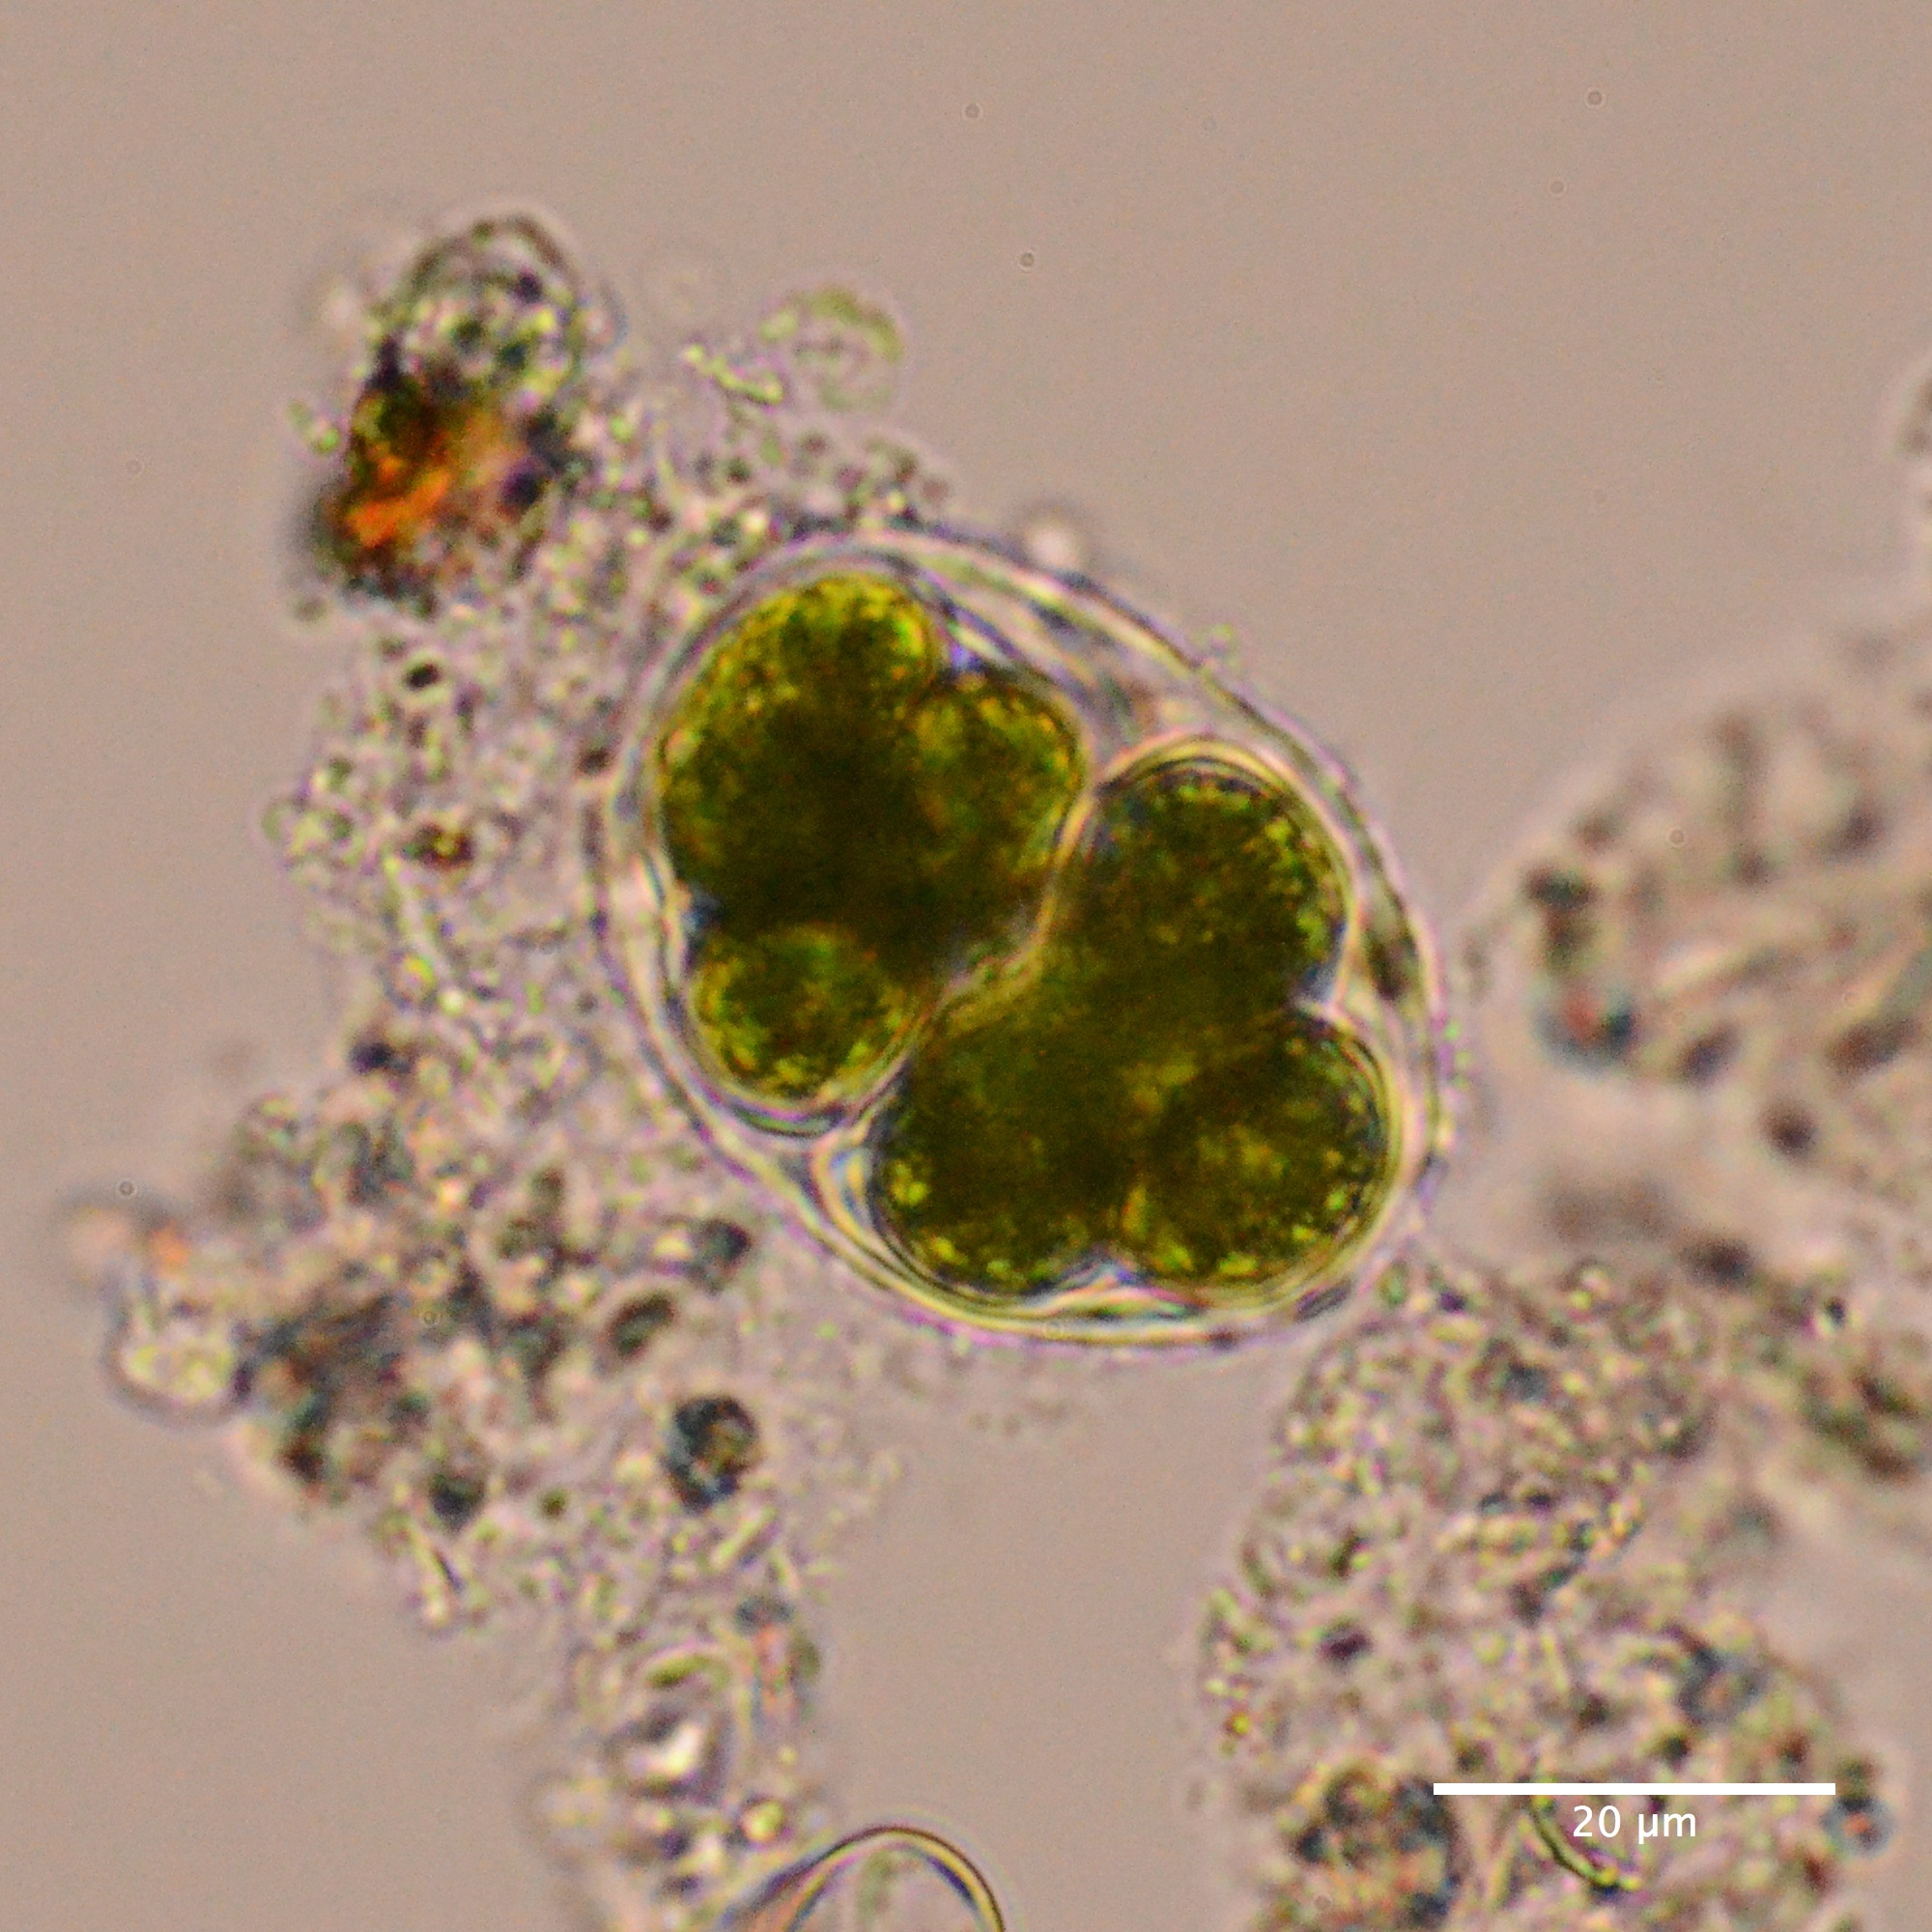 Green algae | Protists in Singapore